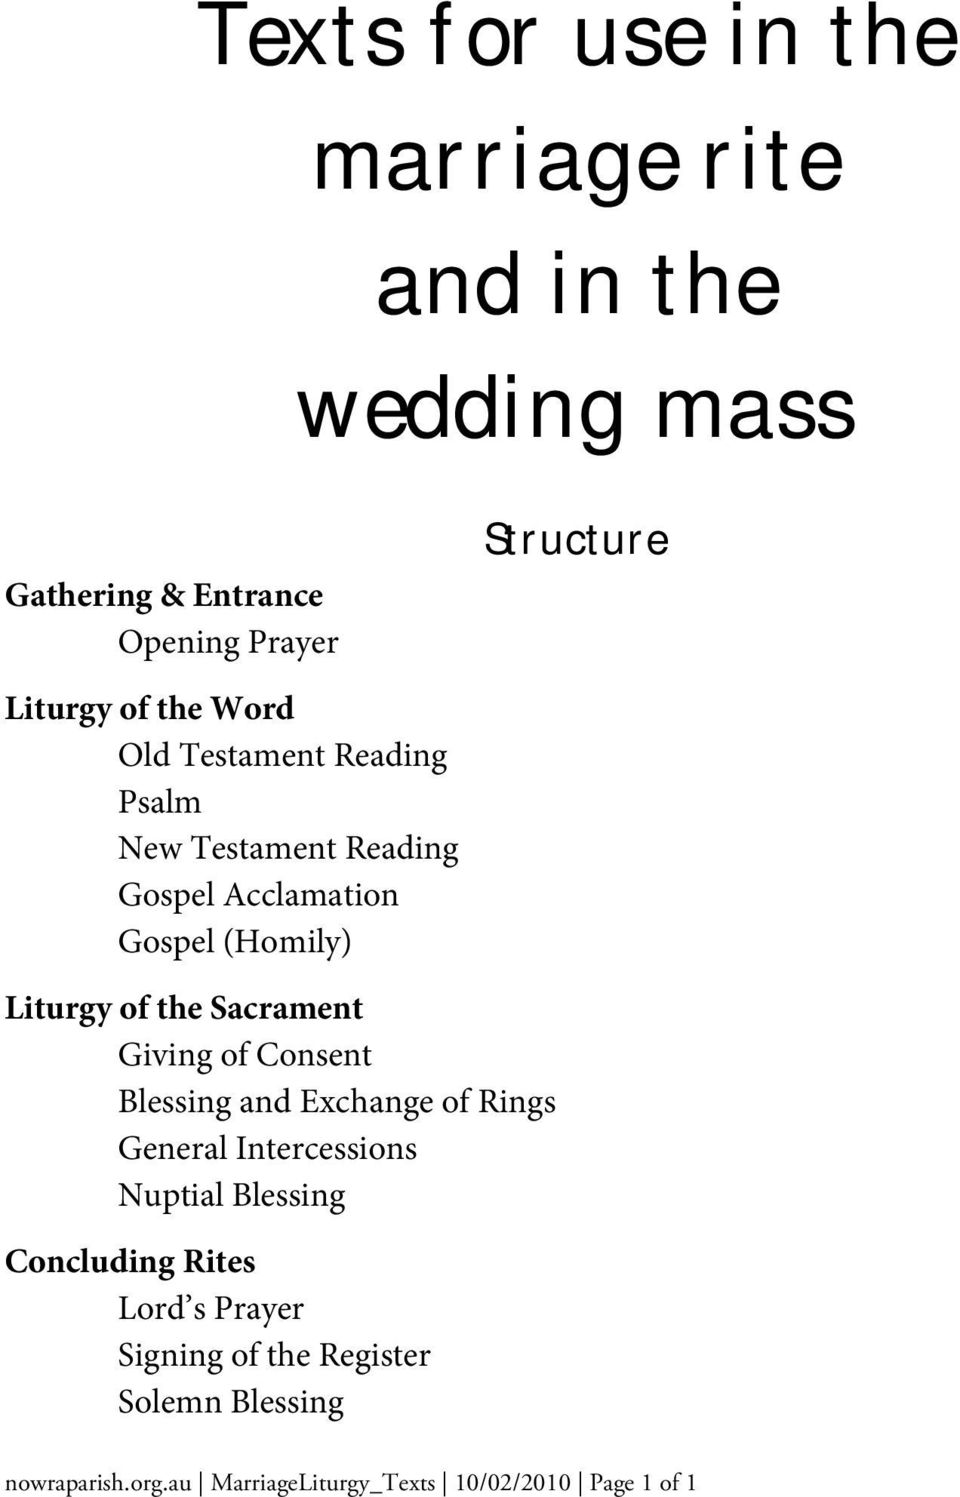 Wedding Homily Definition